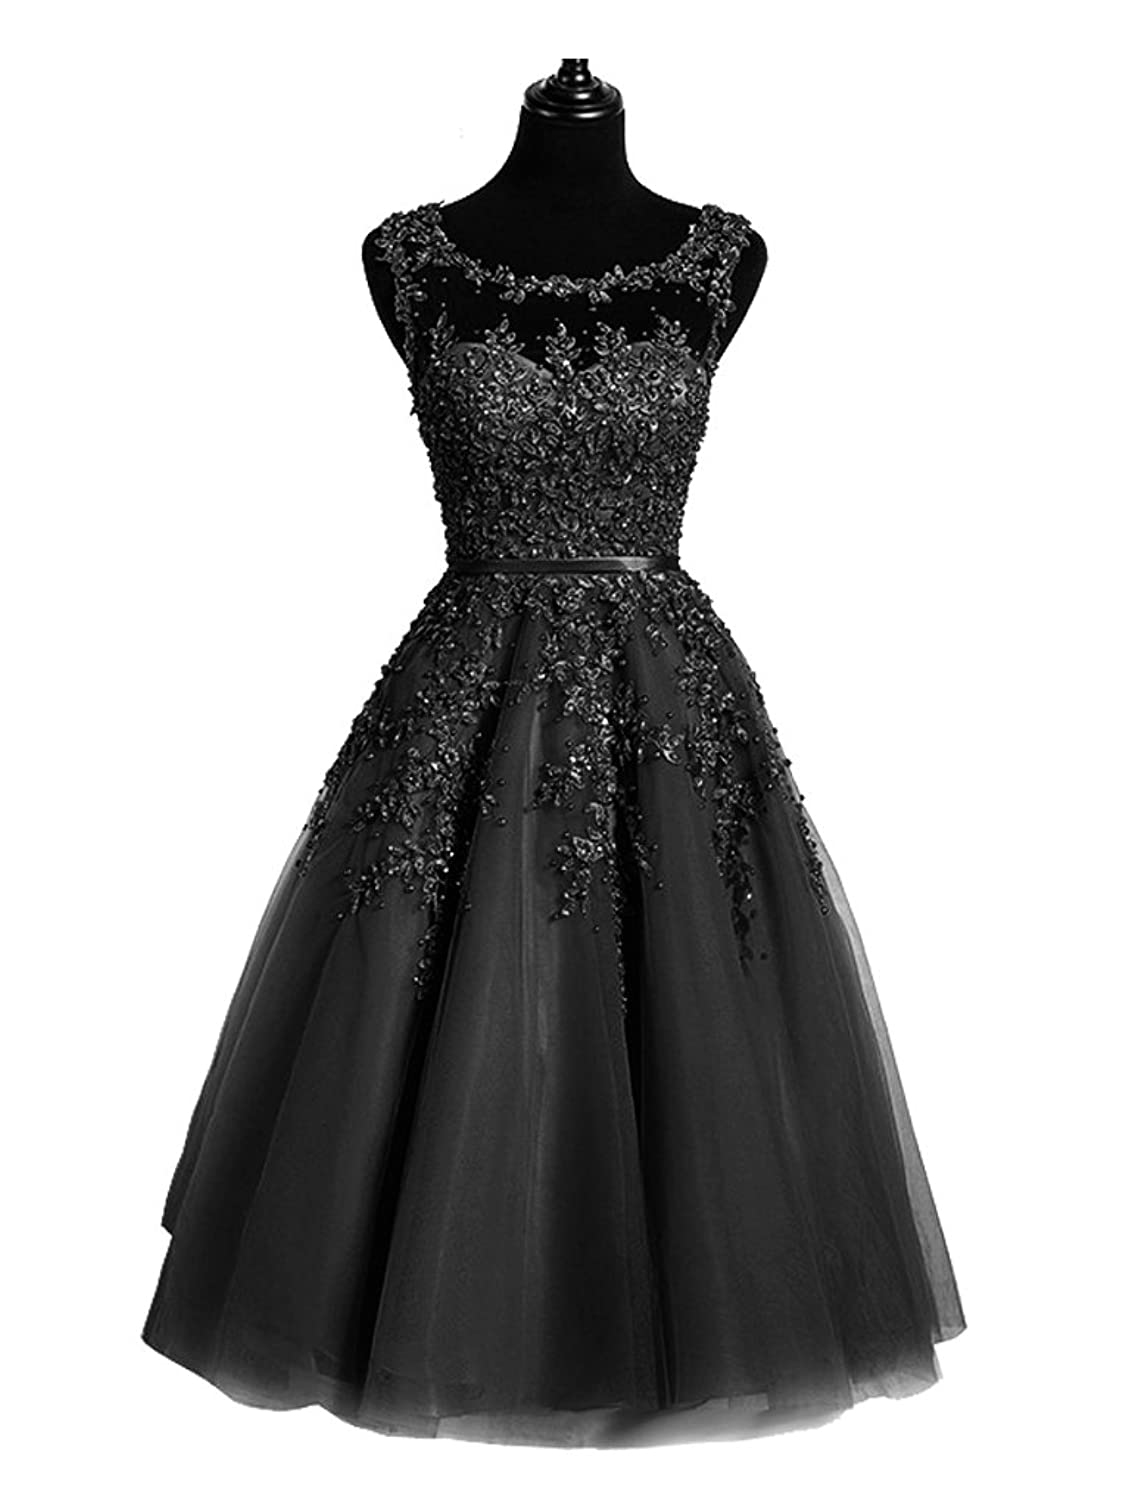 21aa5dcc4b The A line short lace gown is shine, glitter, elegant, vintage, formal,  fashion. 2017 the dresses have a clearance sale now for women.